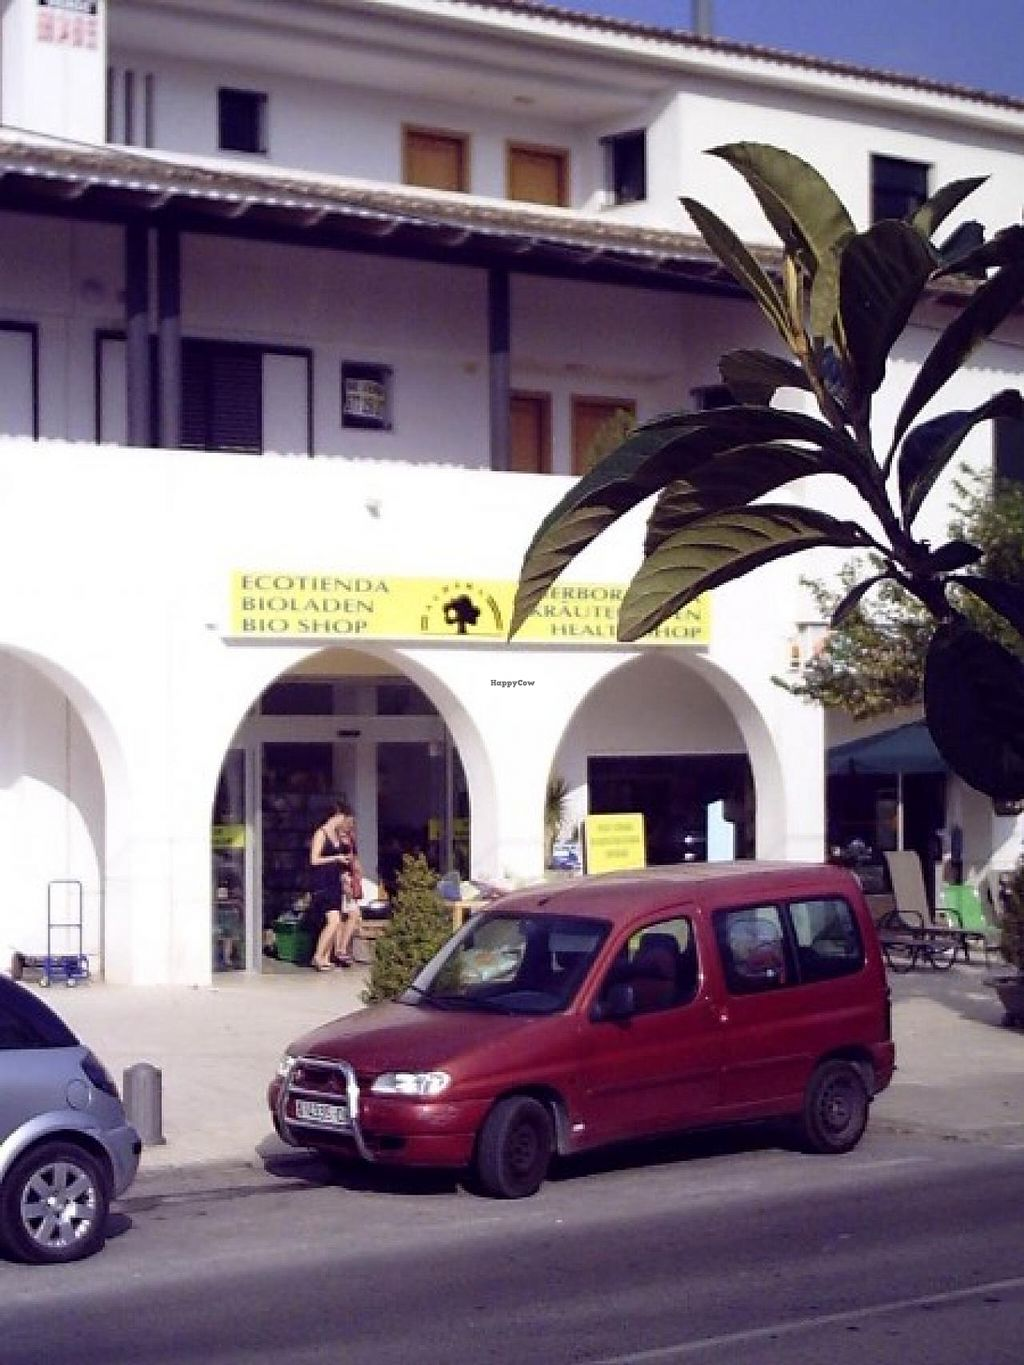 """Photo of Alhama Ecotienda  by <a href=""""/members/profile/community"""">community</a> <br/>Alhama Ecotienda <br/> March 25, 2014  - <a href='/contact/abuse/image/45999/66552'>Report</a>"""